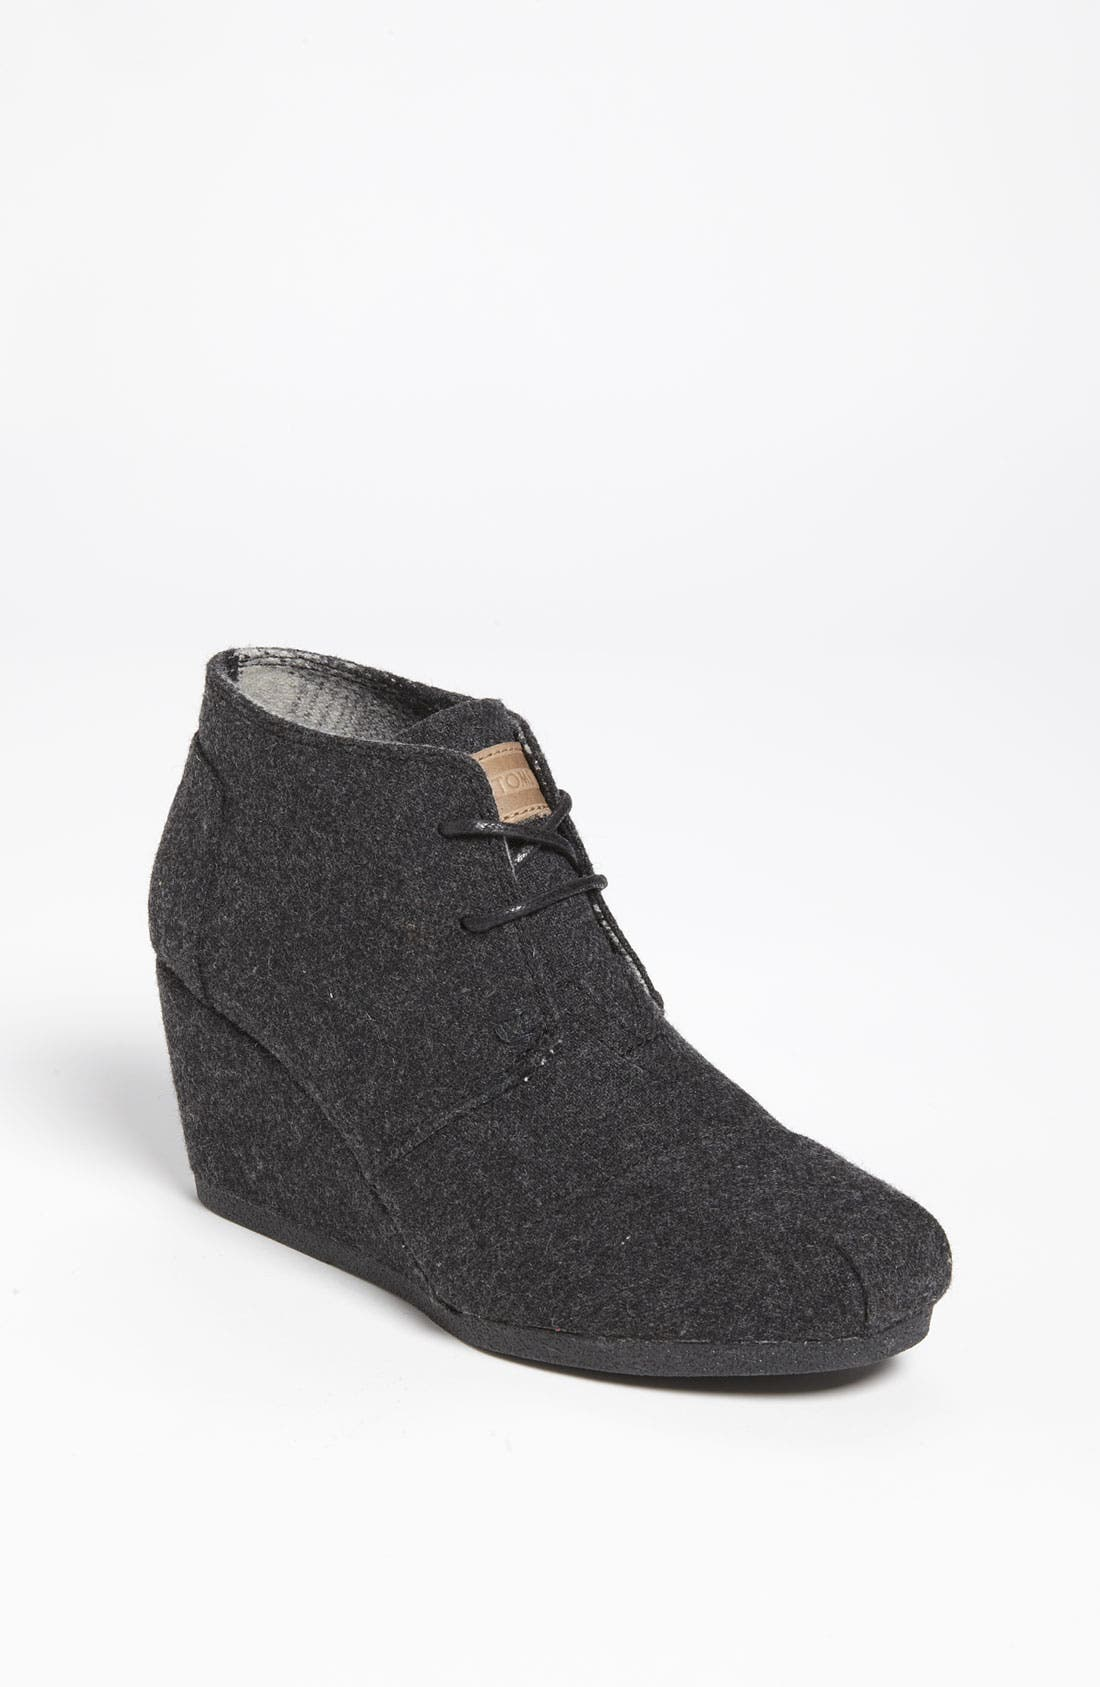 Alternate Image 1 Selected - TOMS 'Desert' Woolen Bootie